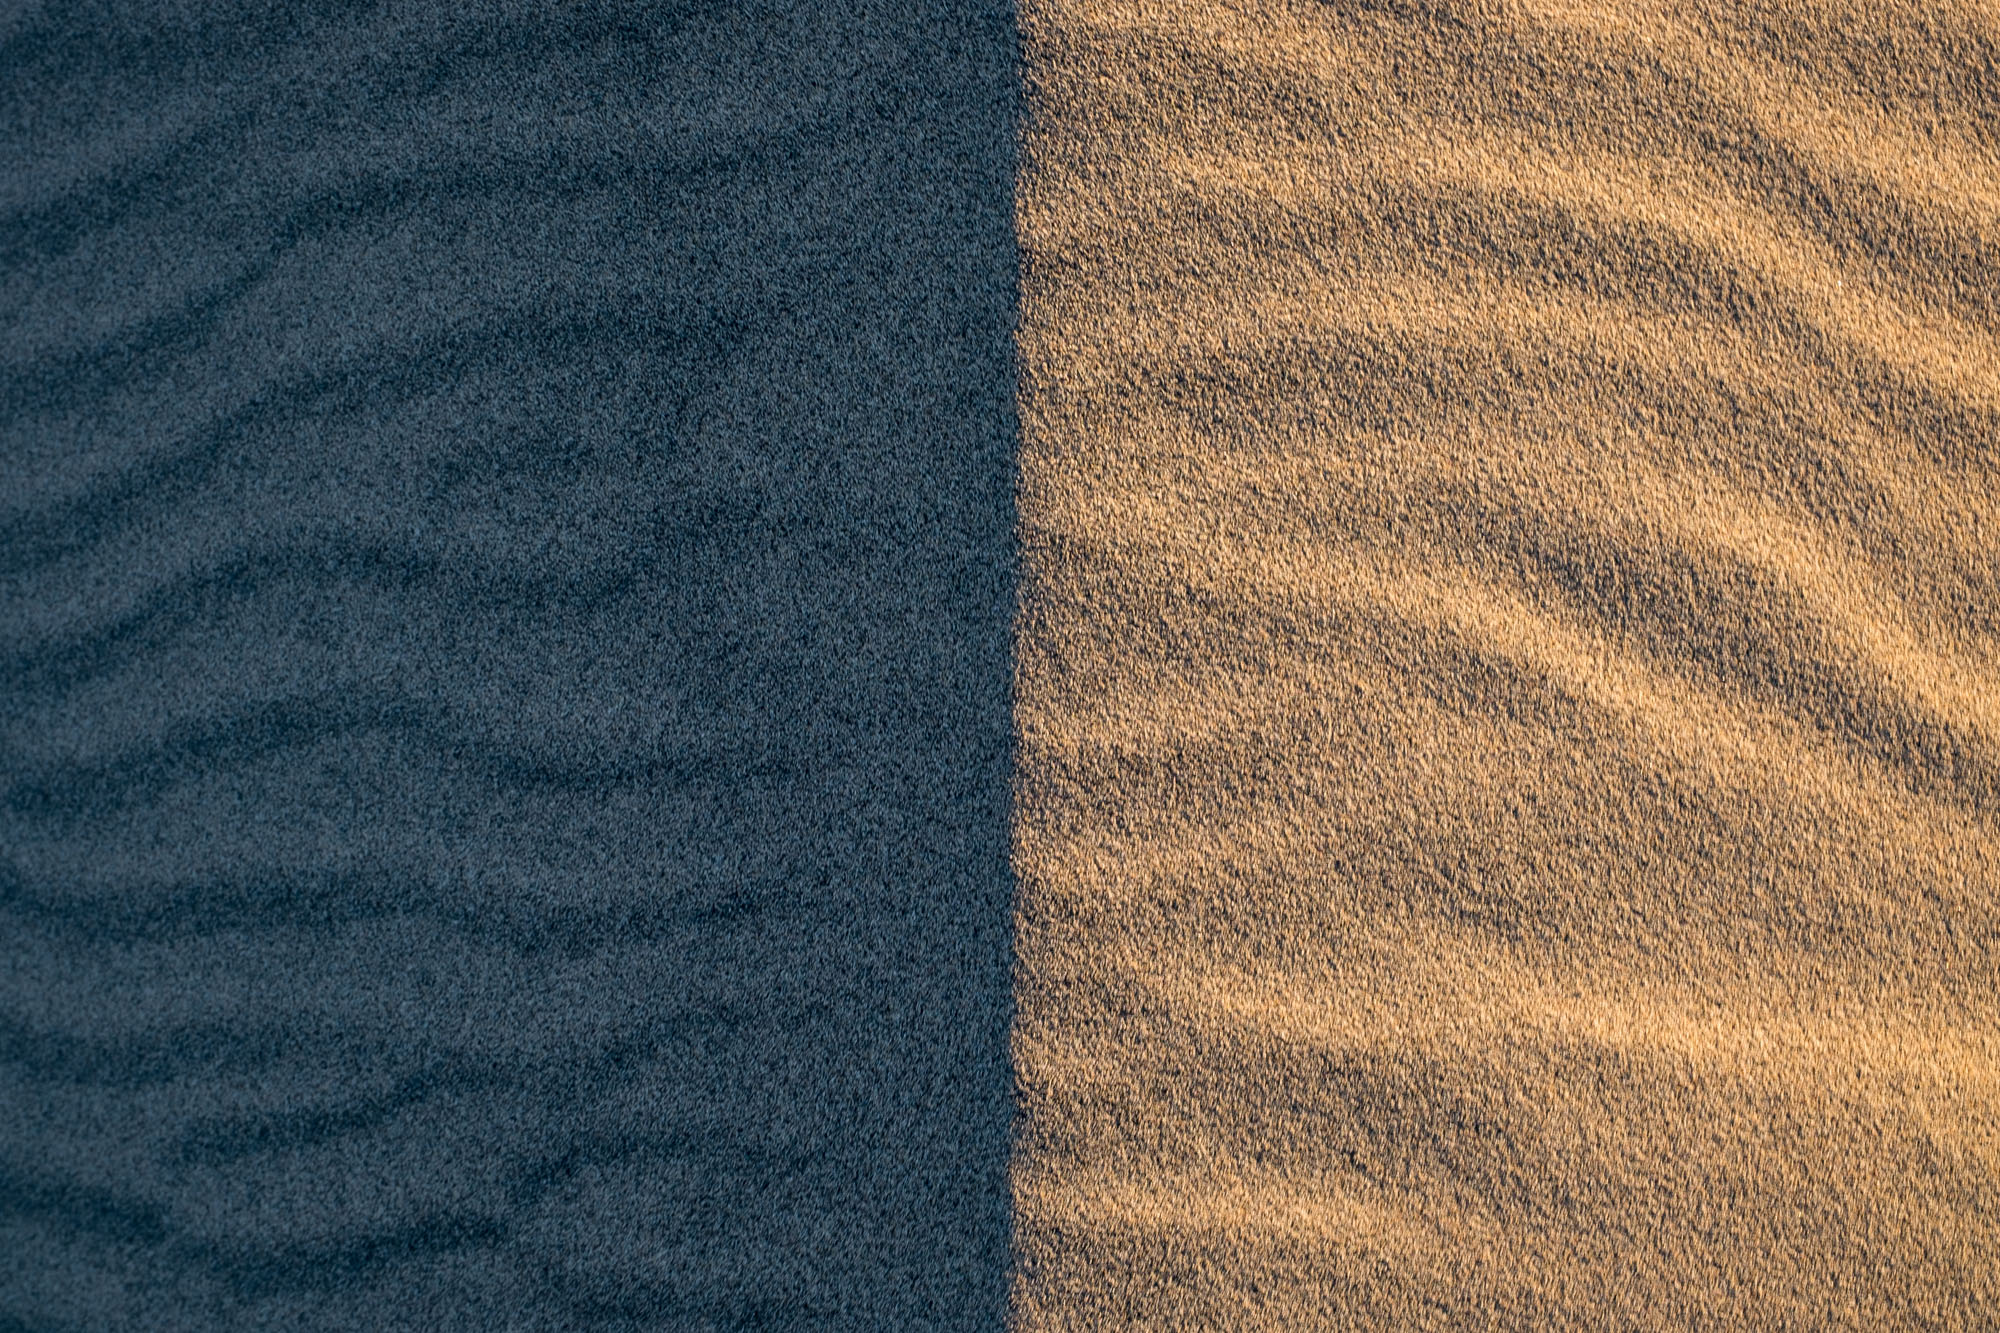 The Mesquite Sand Dunes at sunrise offer so many fun ways to photograph. I love this abstract of the light and shadow on the sand.